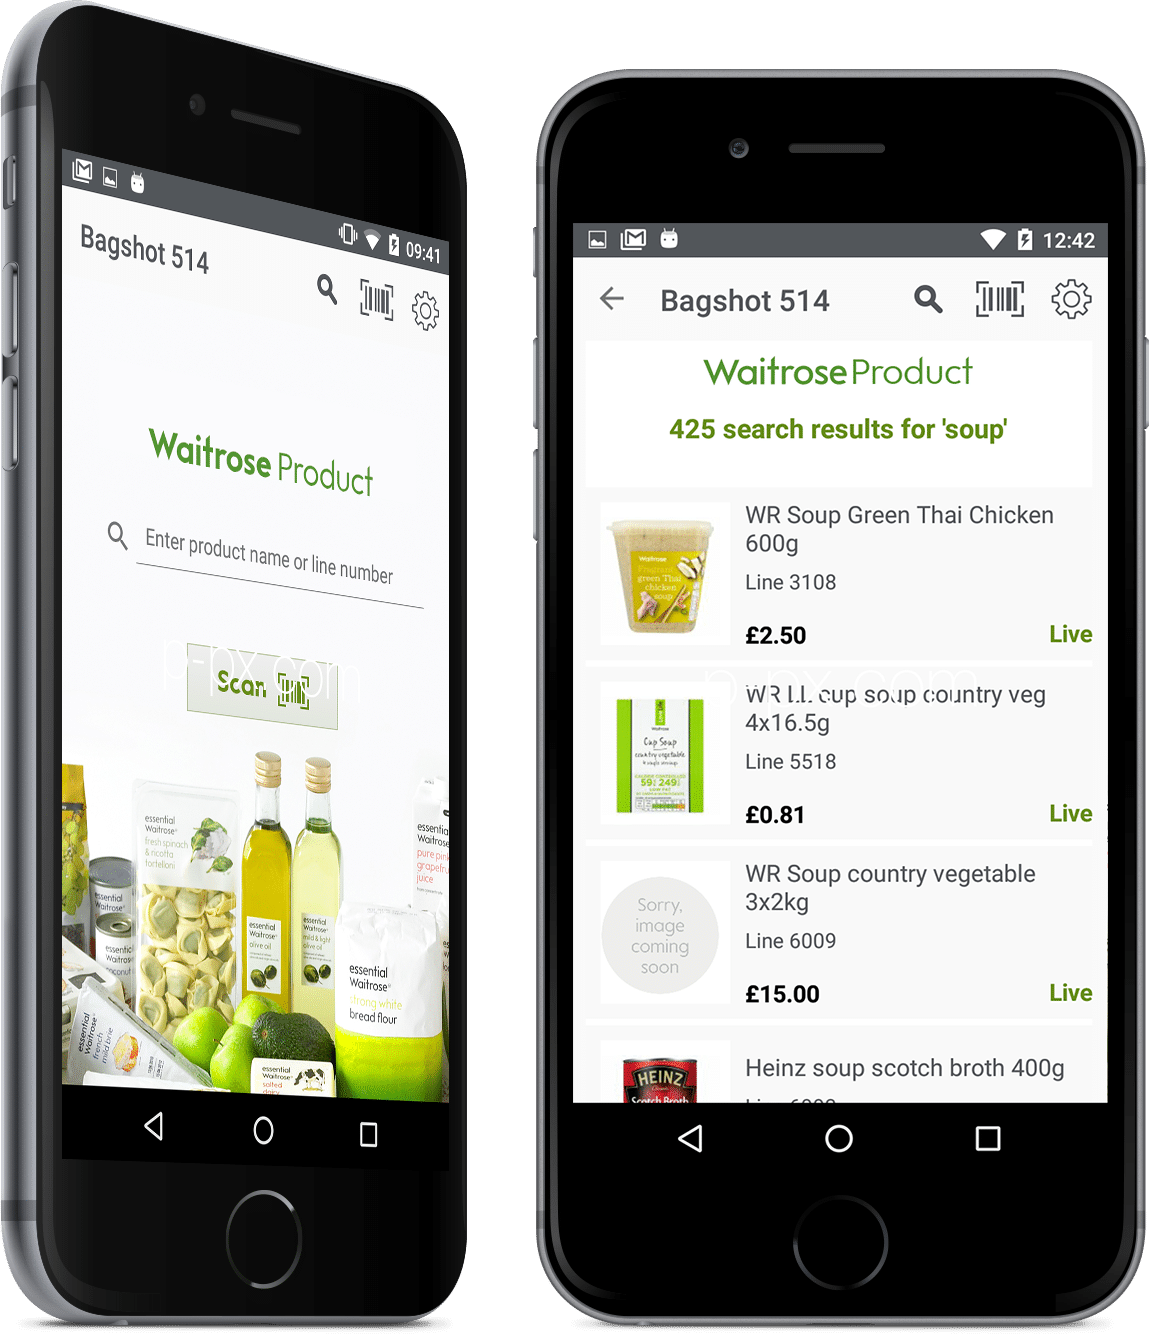 xamarin forms app for waitrose